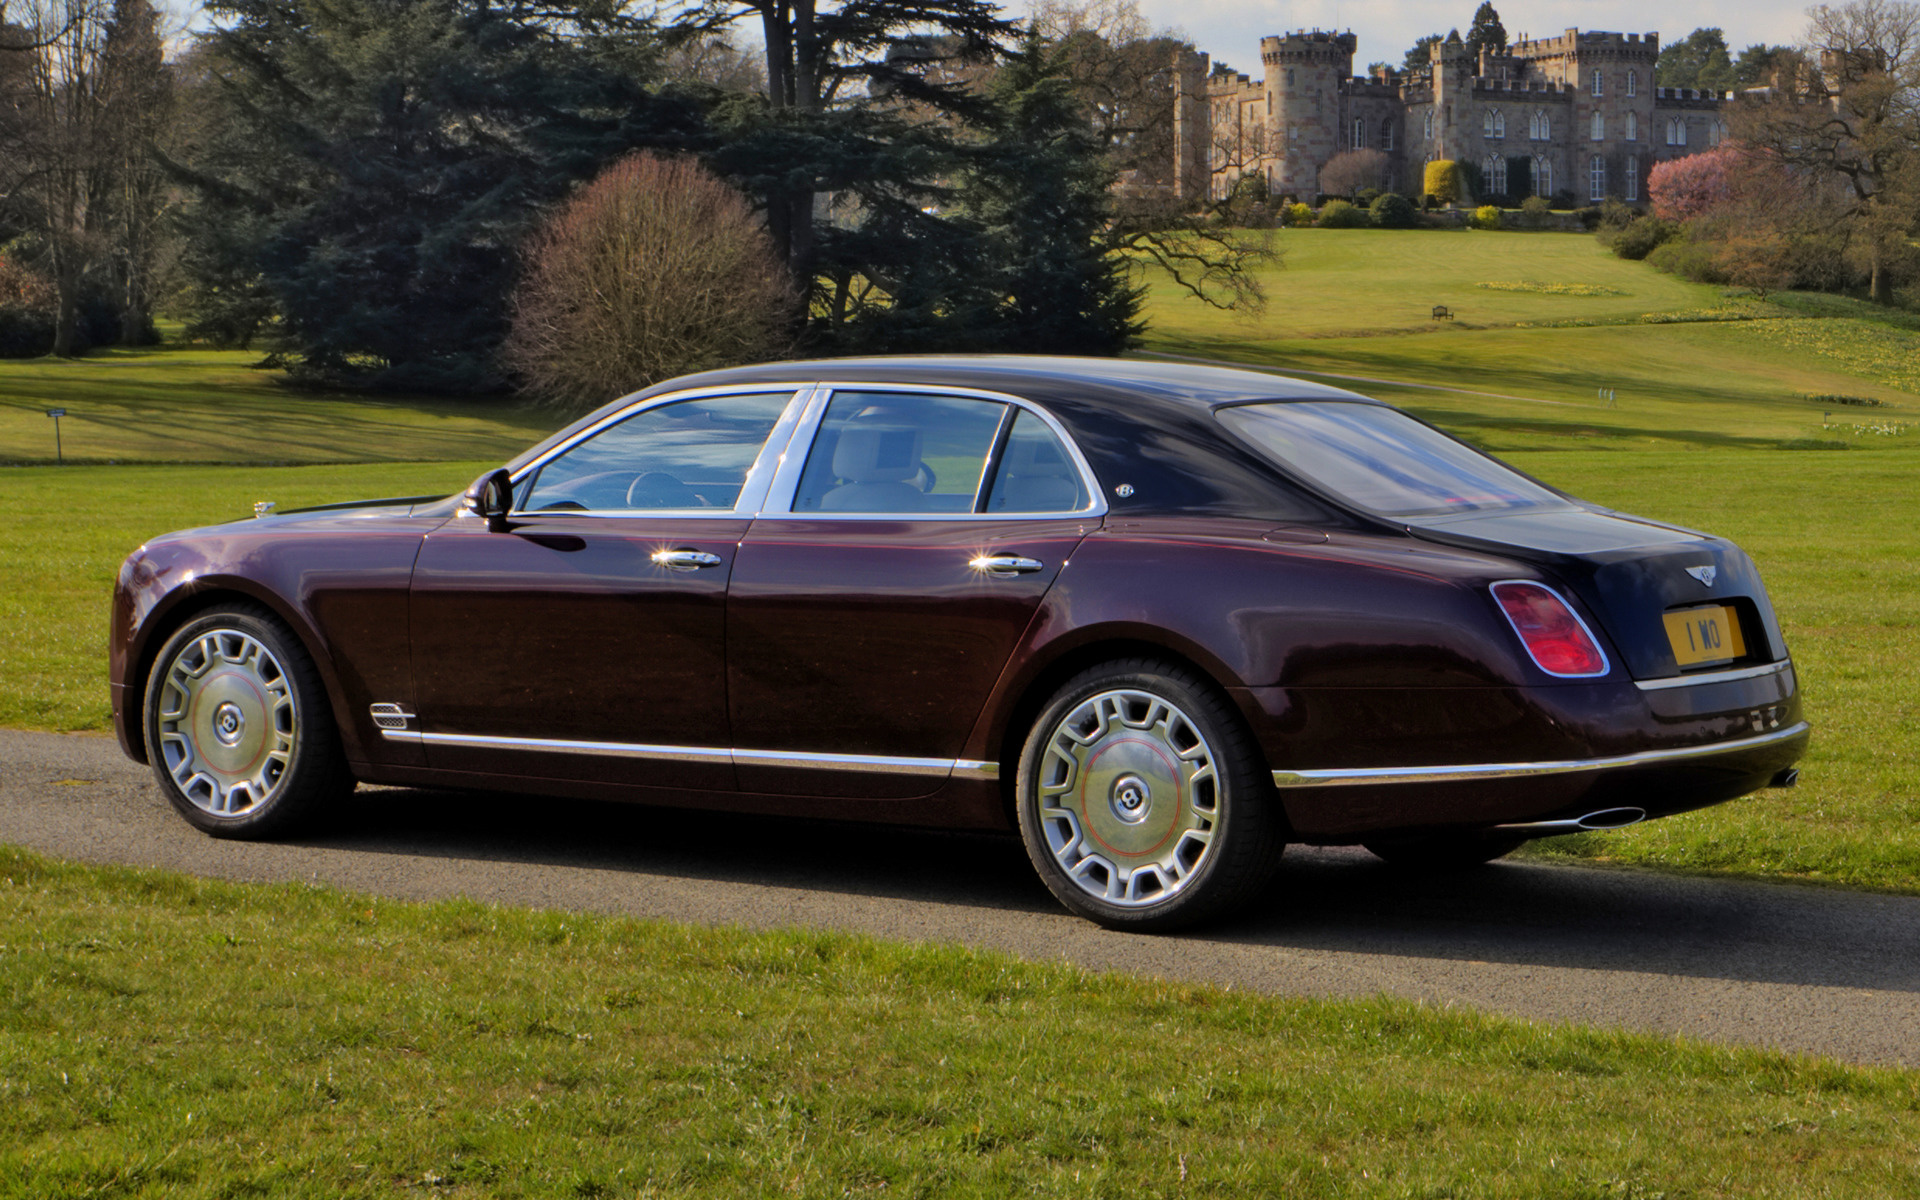 Bentley Mulsanne Diamond Jubilee (2012) Wallpapers and HD Images ...